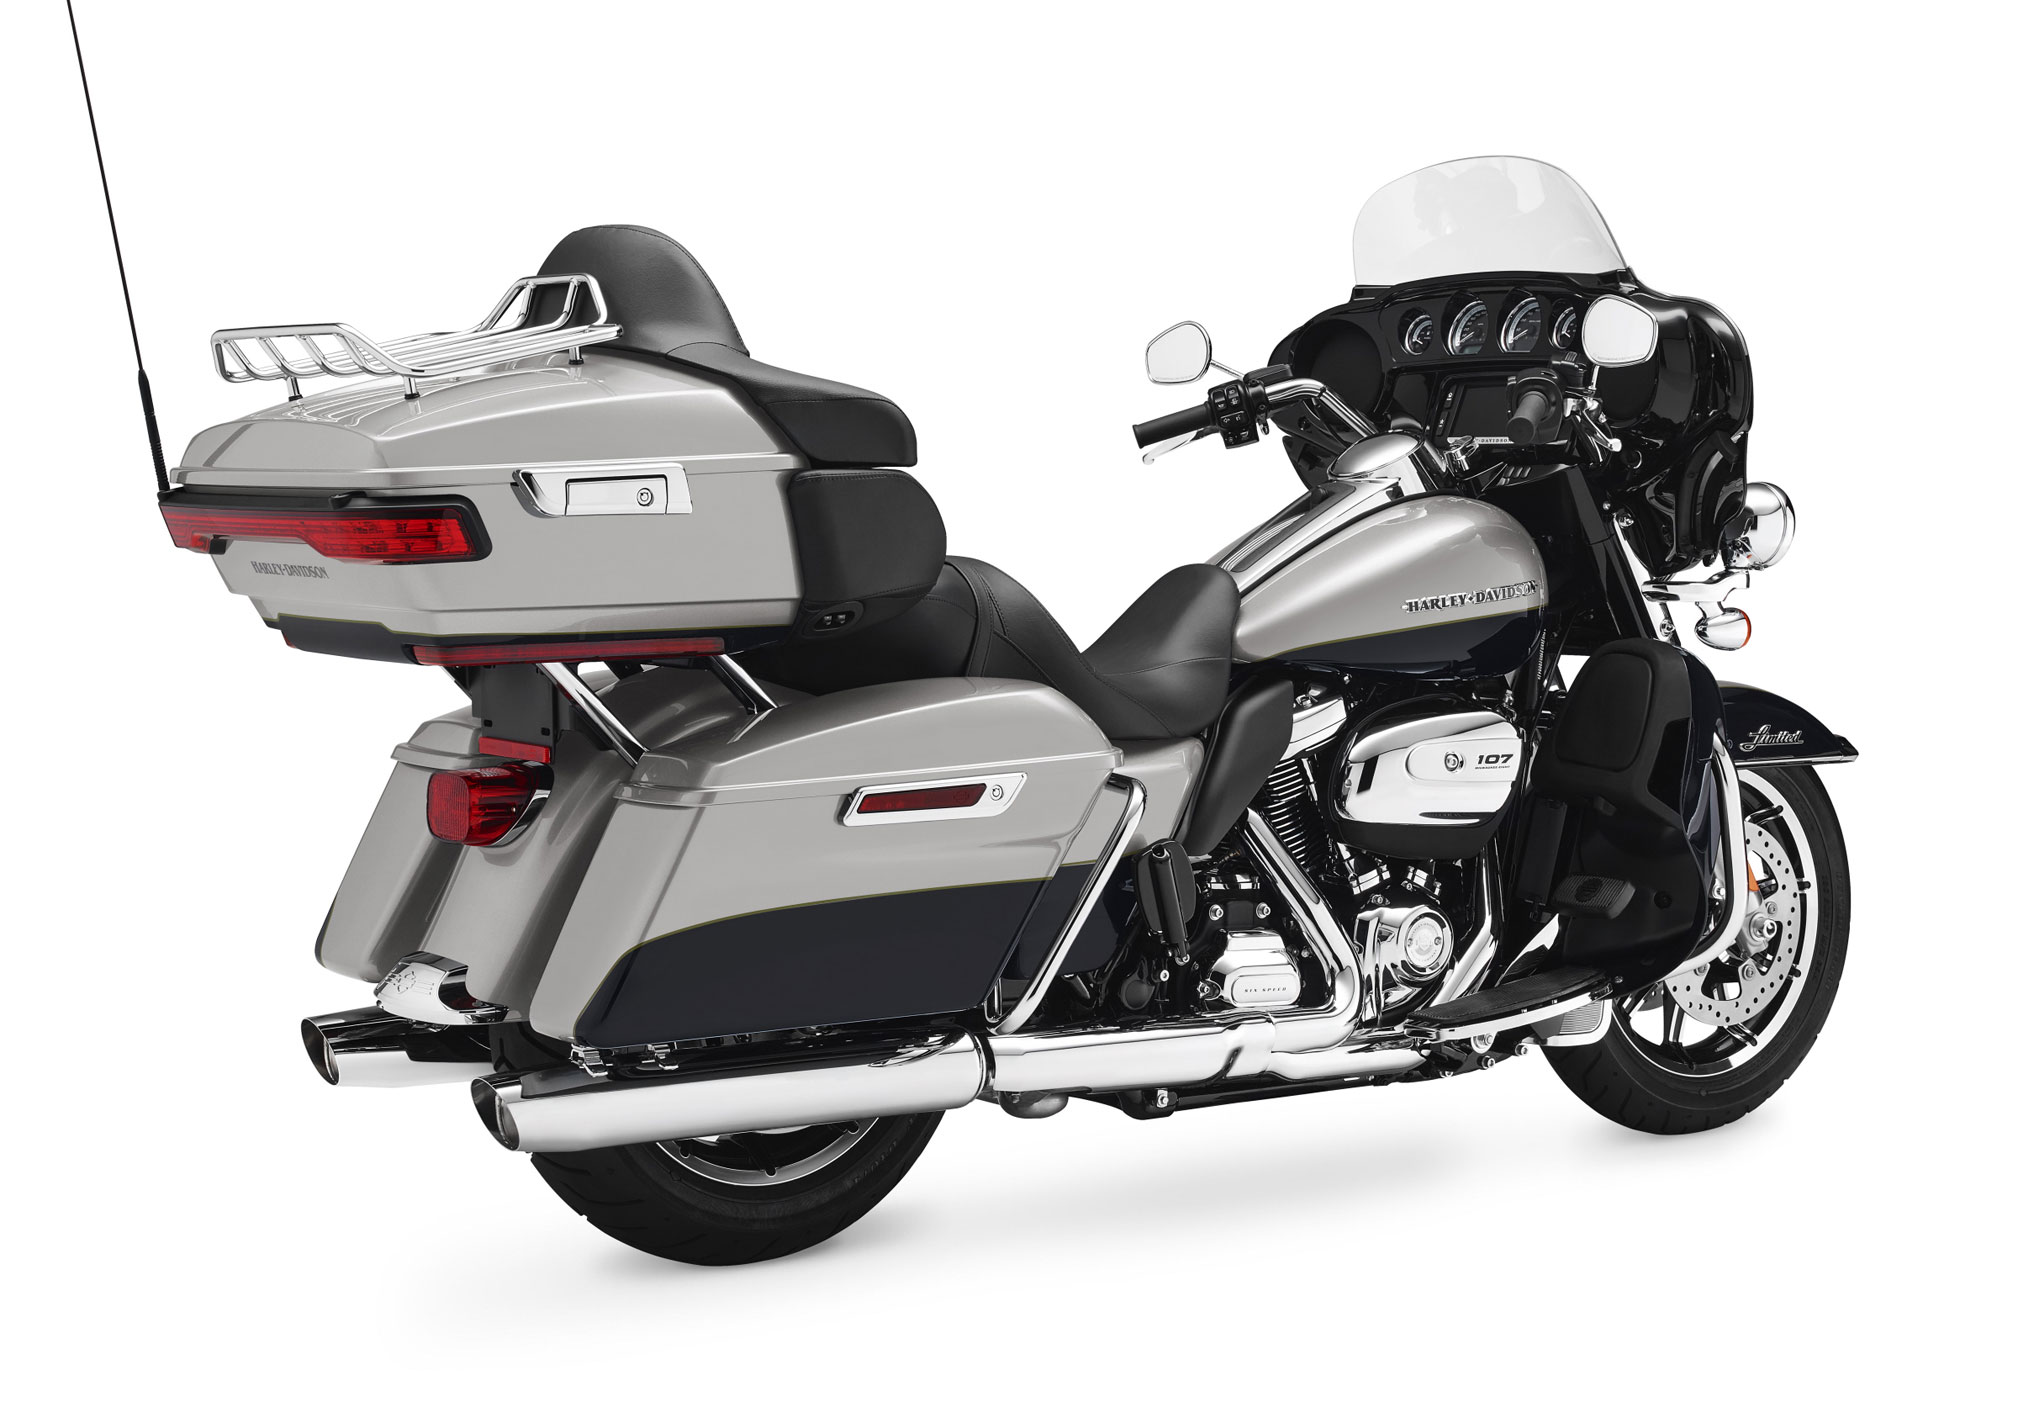 Harley Davidson Ultra Limited Low Review